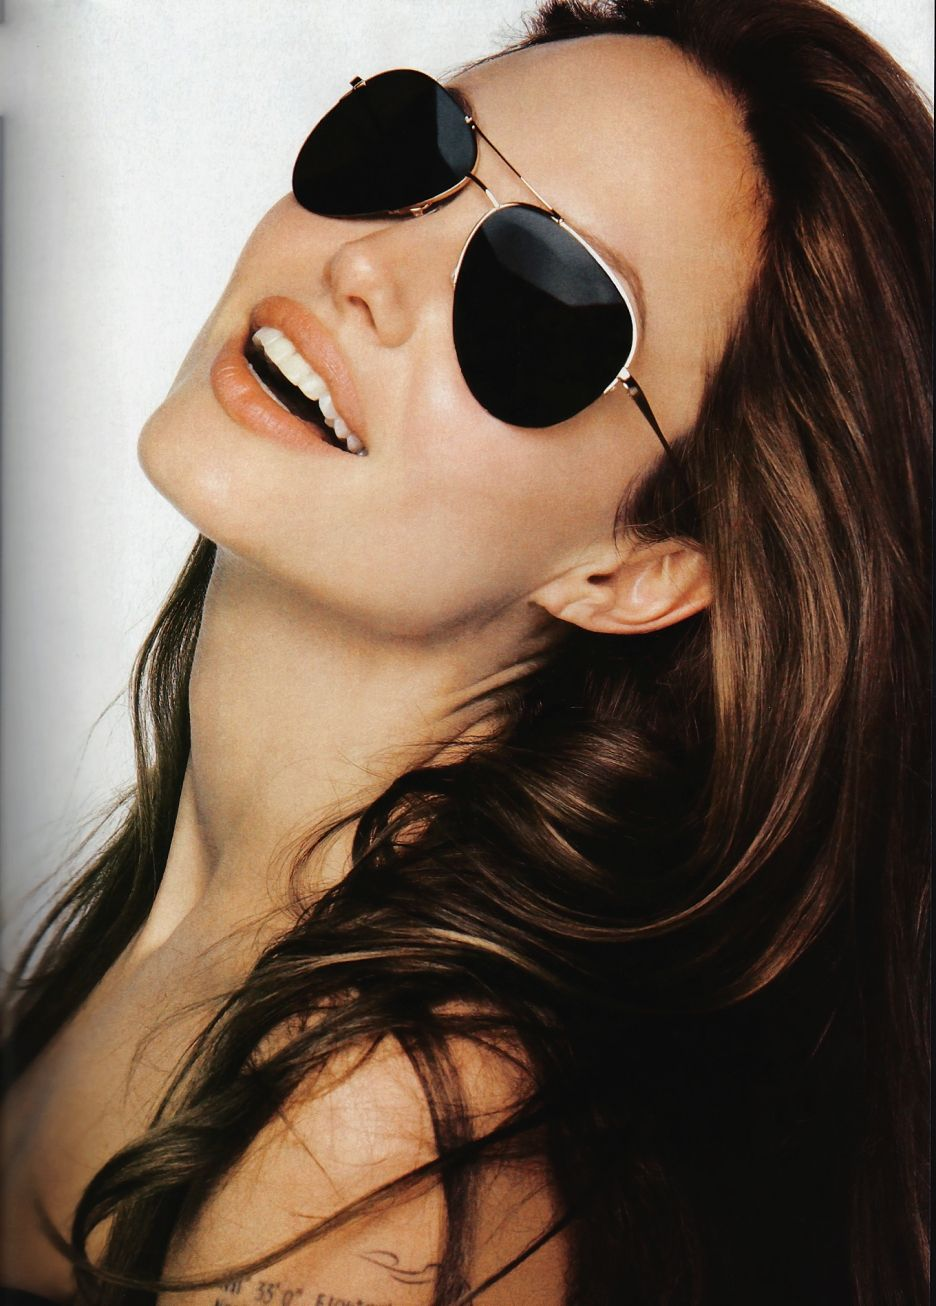 c69ba5cb60 angelina jolie - Google Search Sunglasses 2014